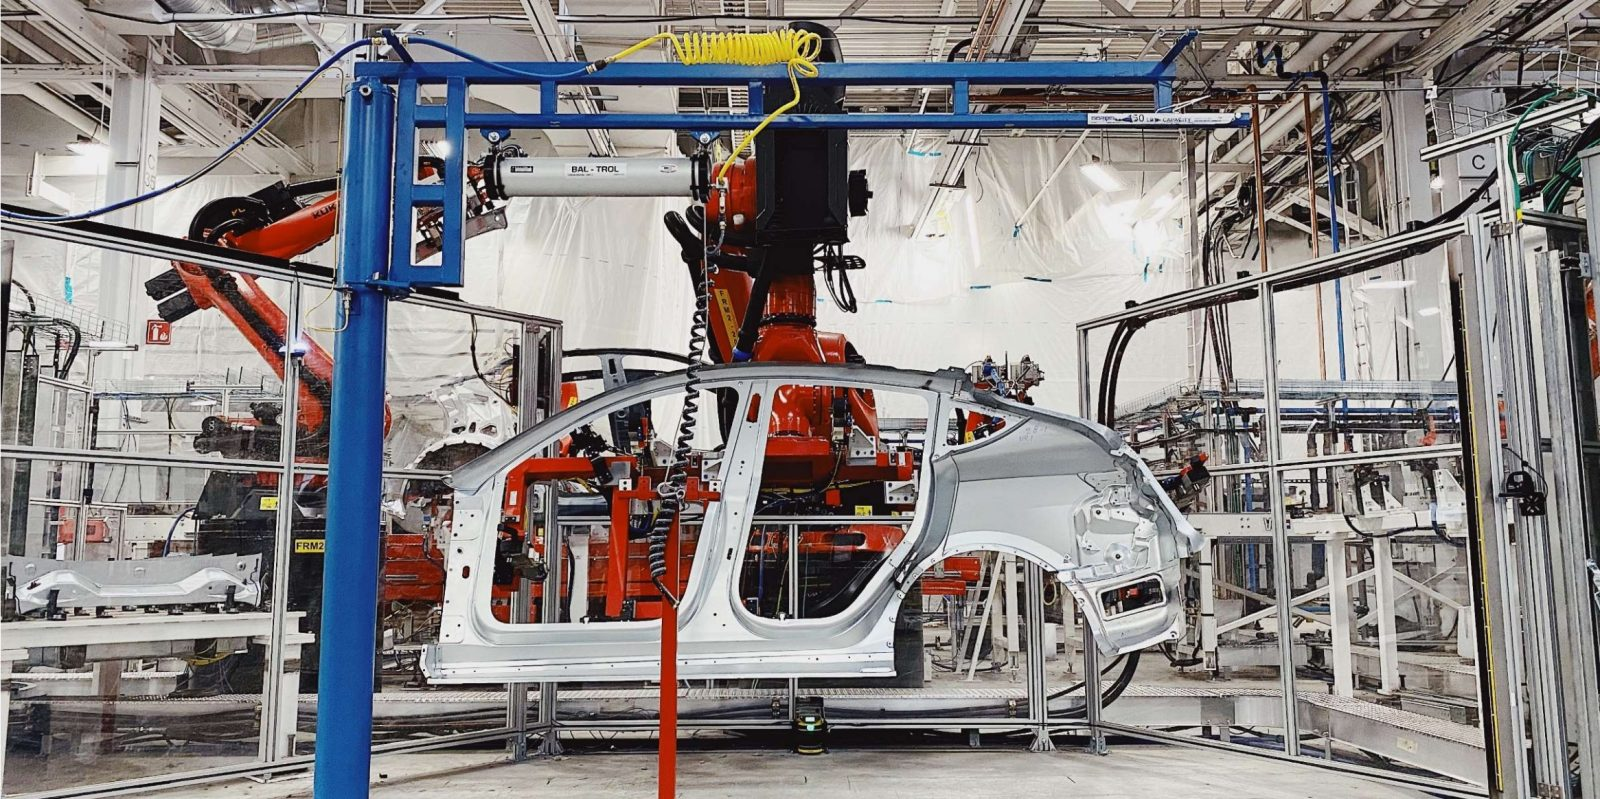 Can Tesla's production ramp help solve service part shortages by end of 2020?